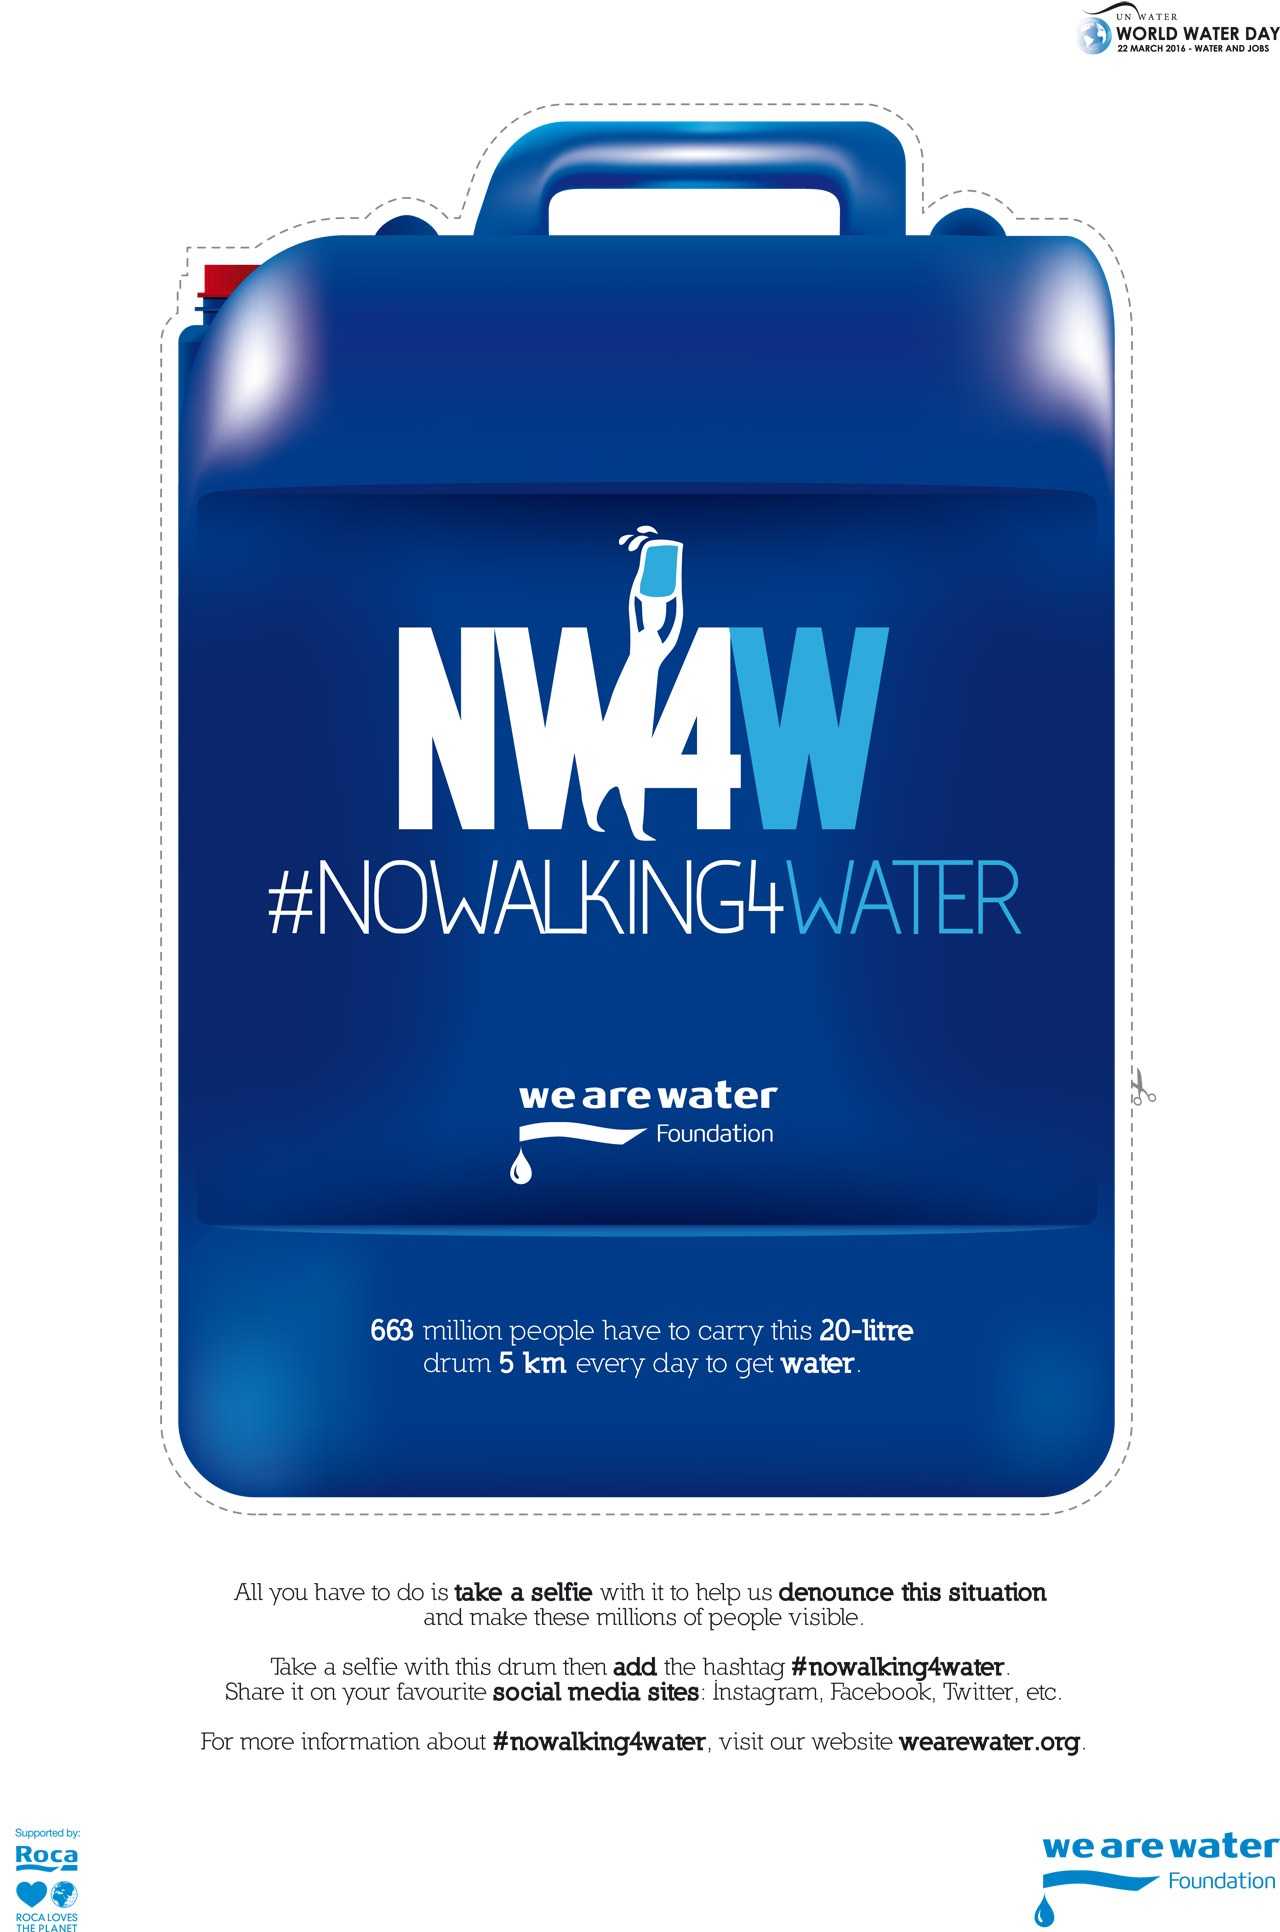 NoWalking4Water